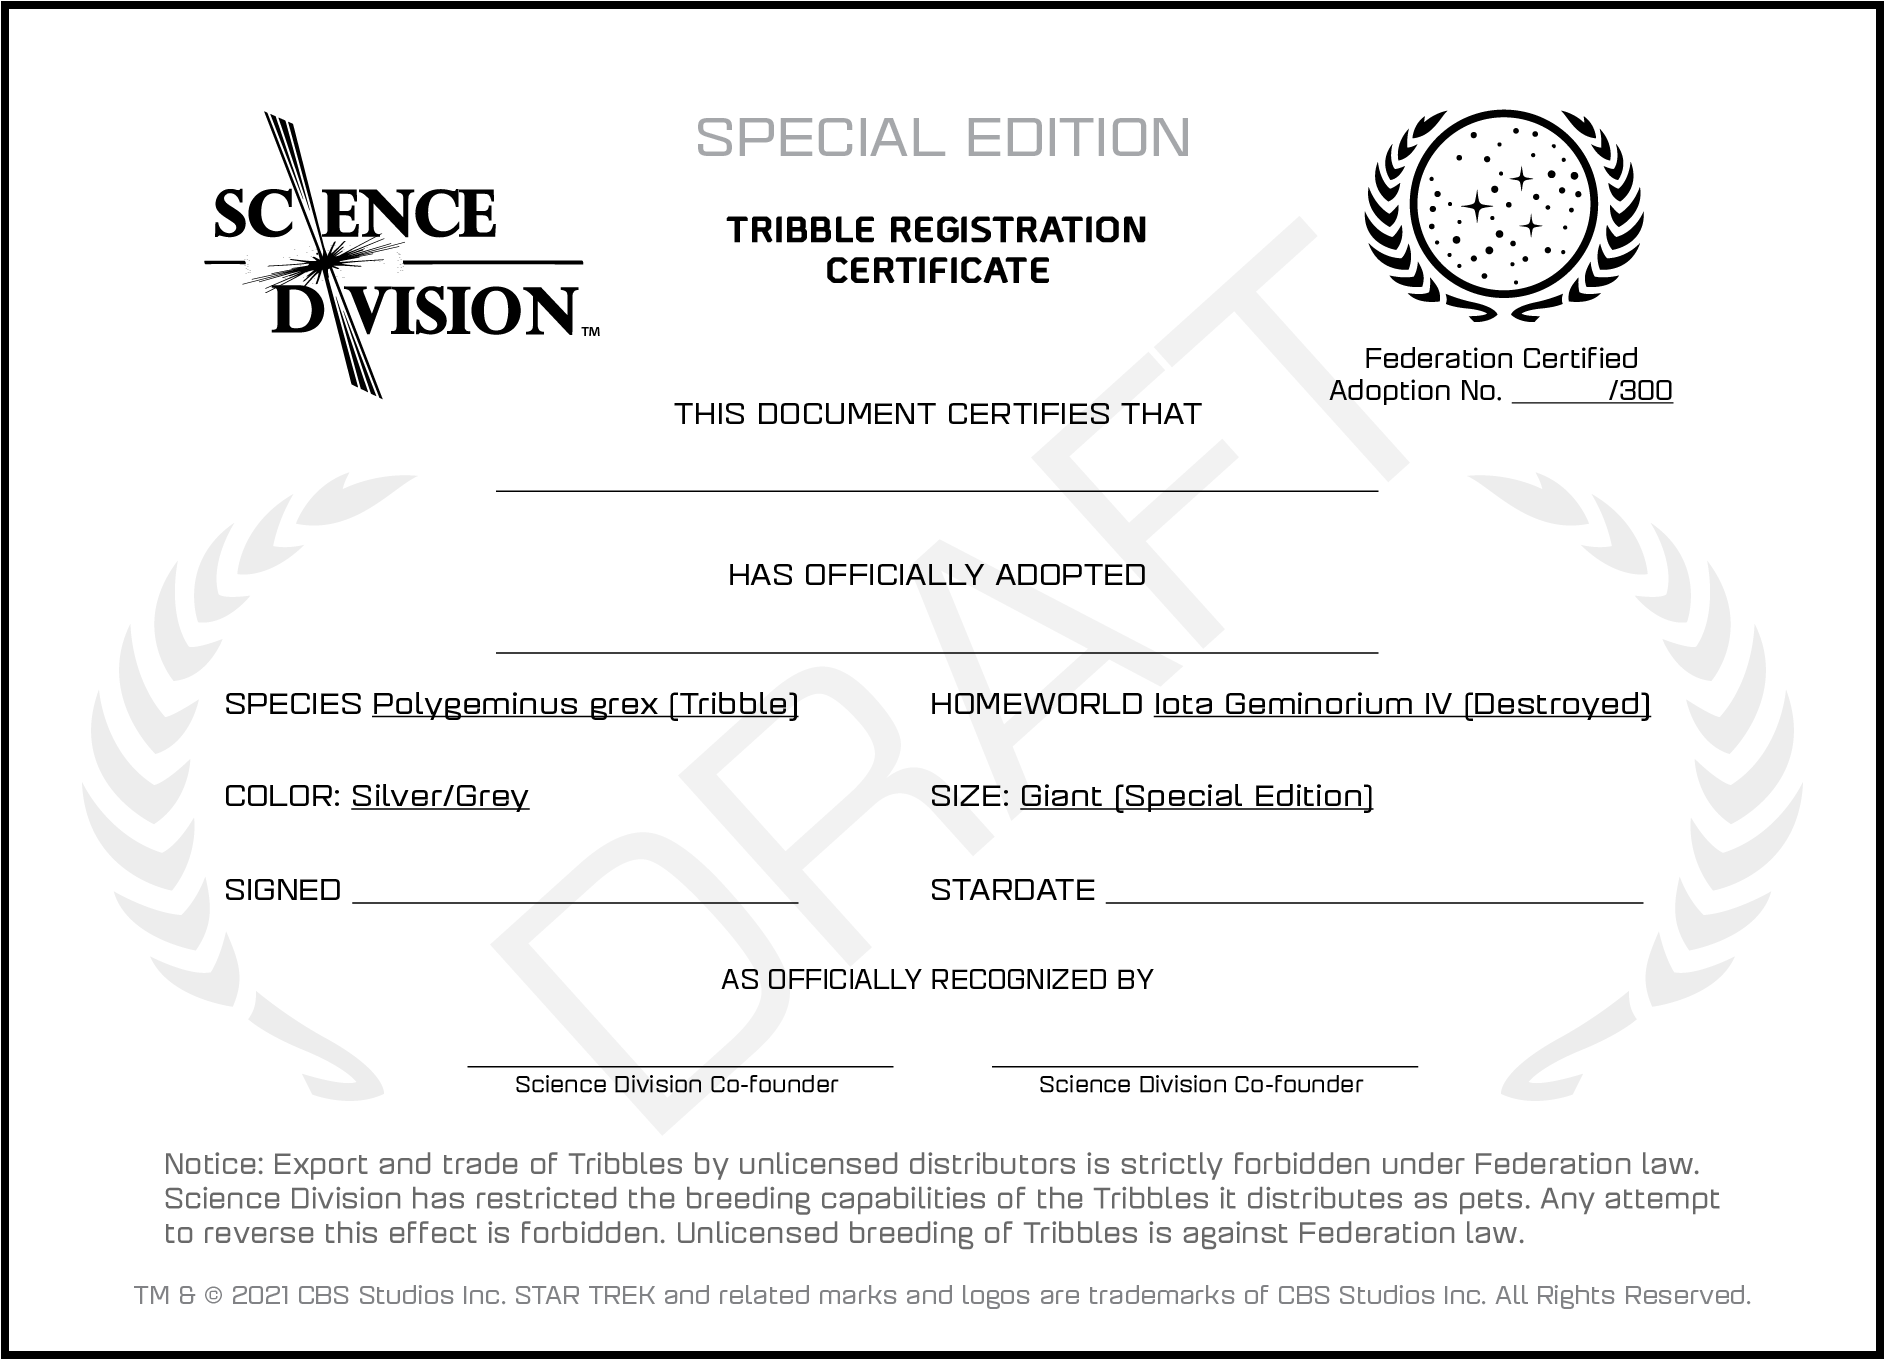 A draft adoption certificate for Special Edition Giant Silver Tribbles